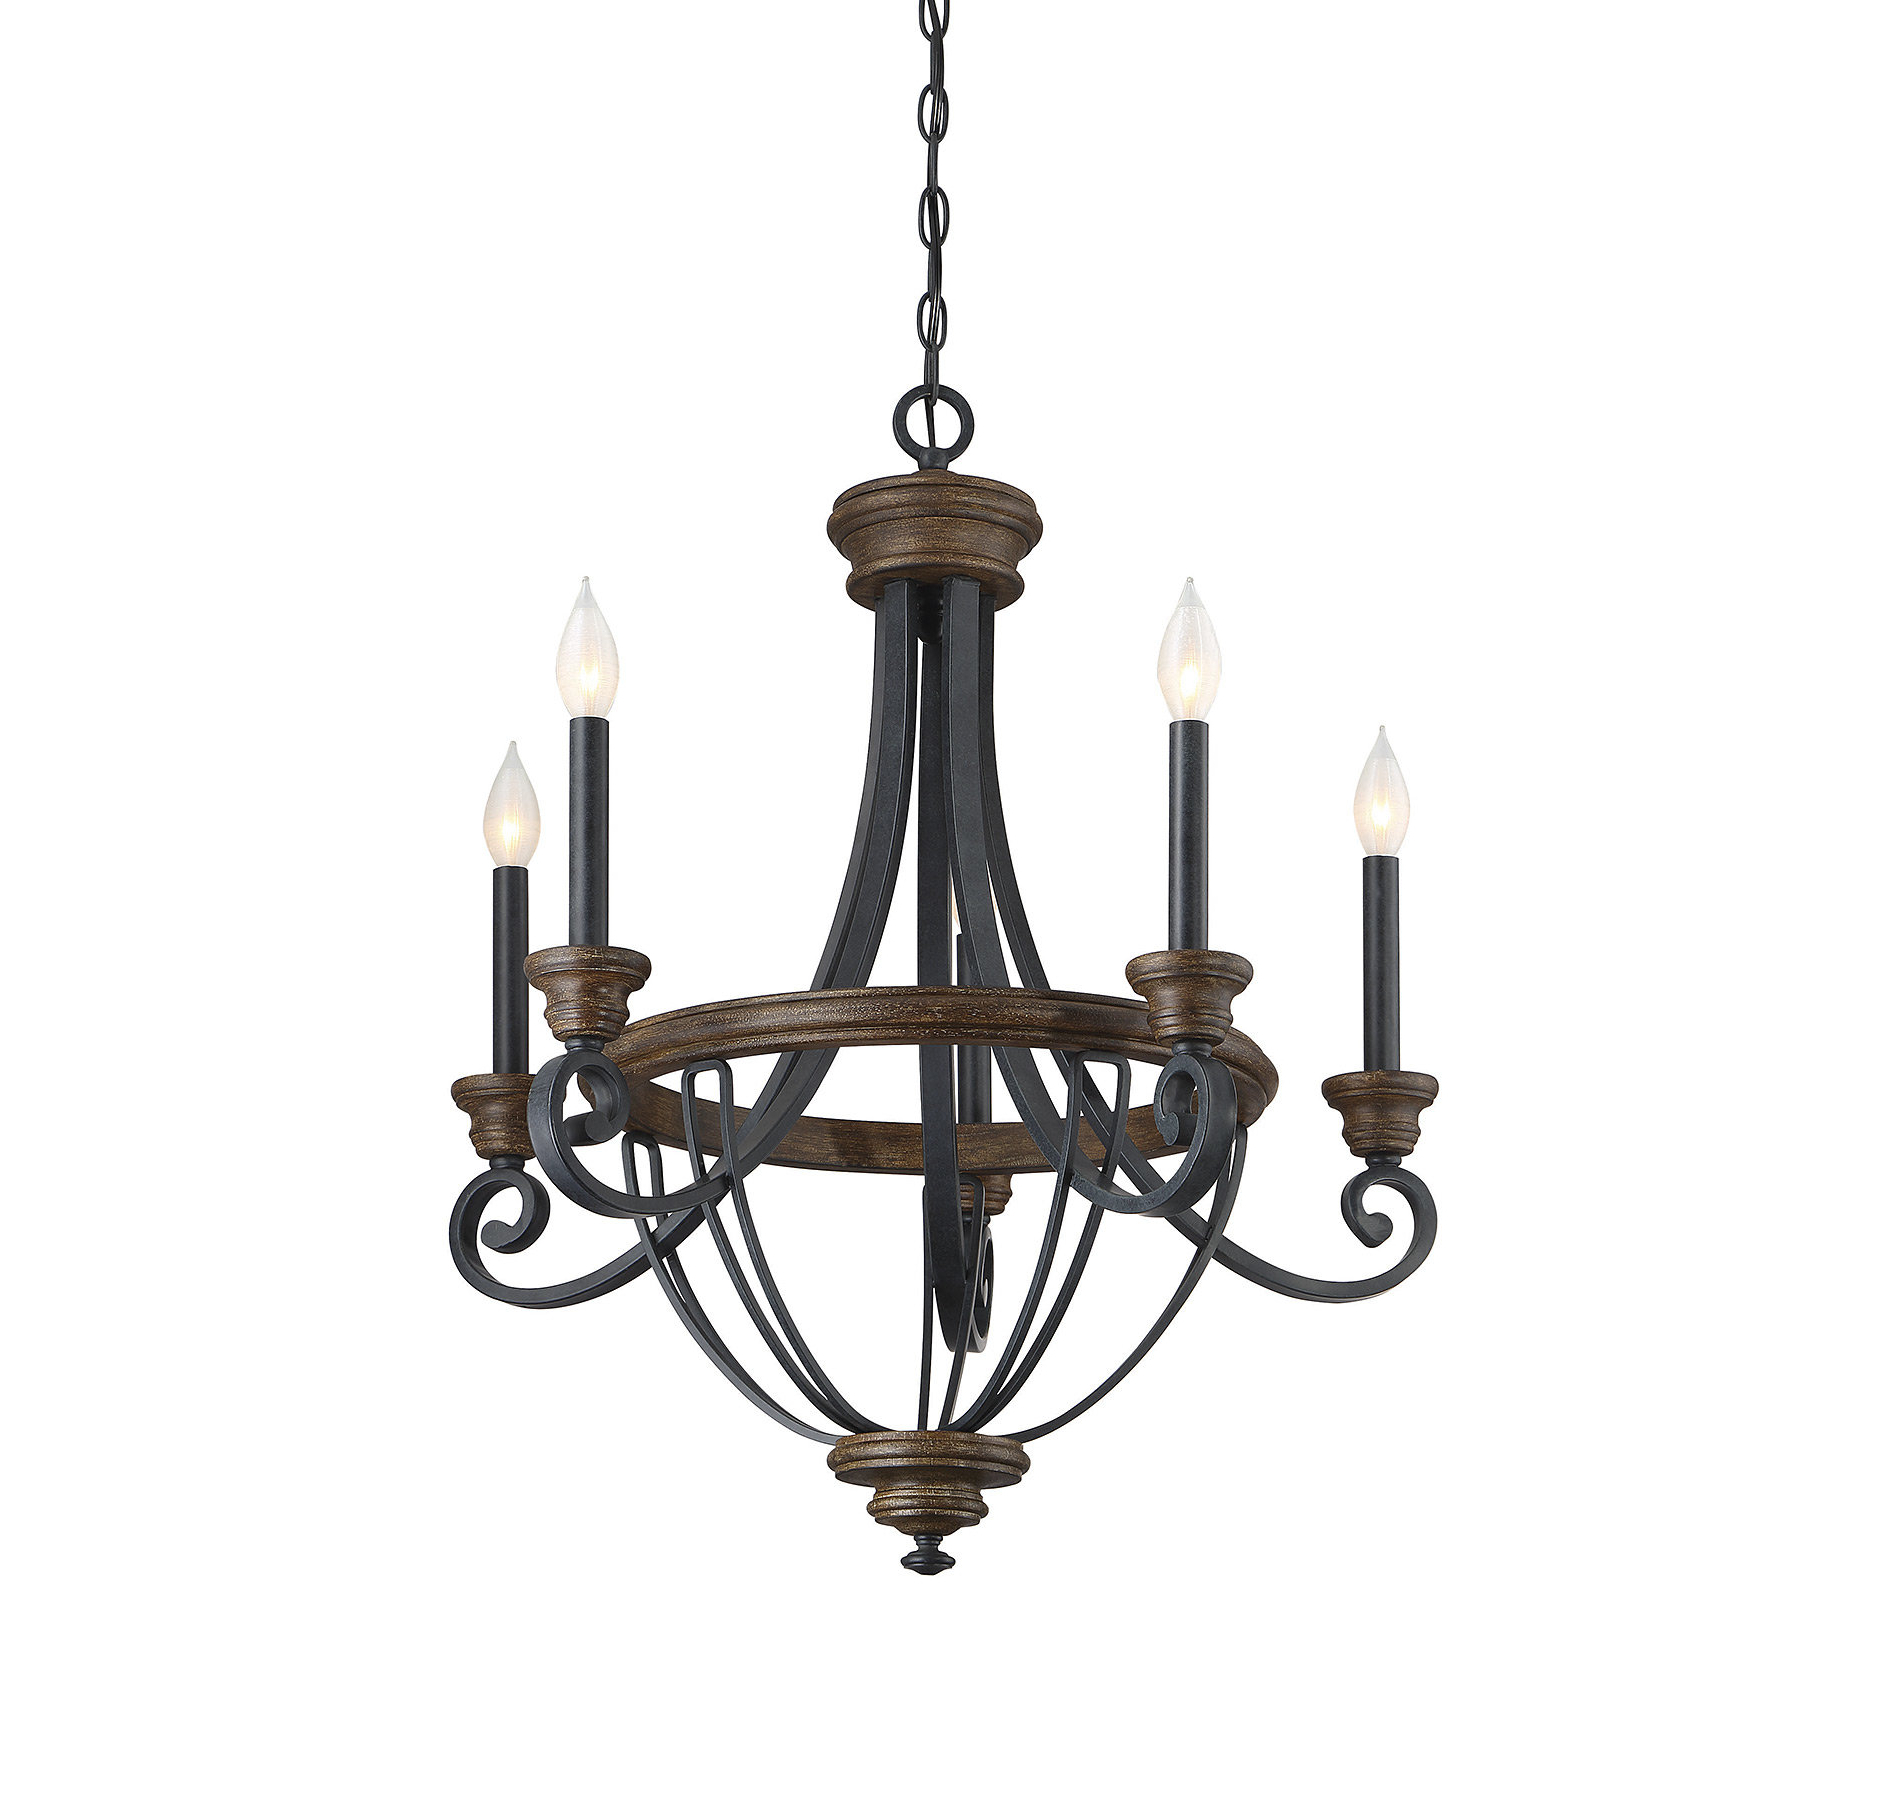 Nanteuil 5 Light Empire Chandelier Intended For 2020 Camilla 9 Light Candle Style Chandeliers (Gallery 11 of 20)